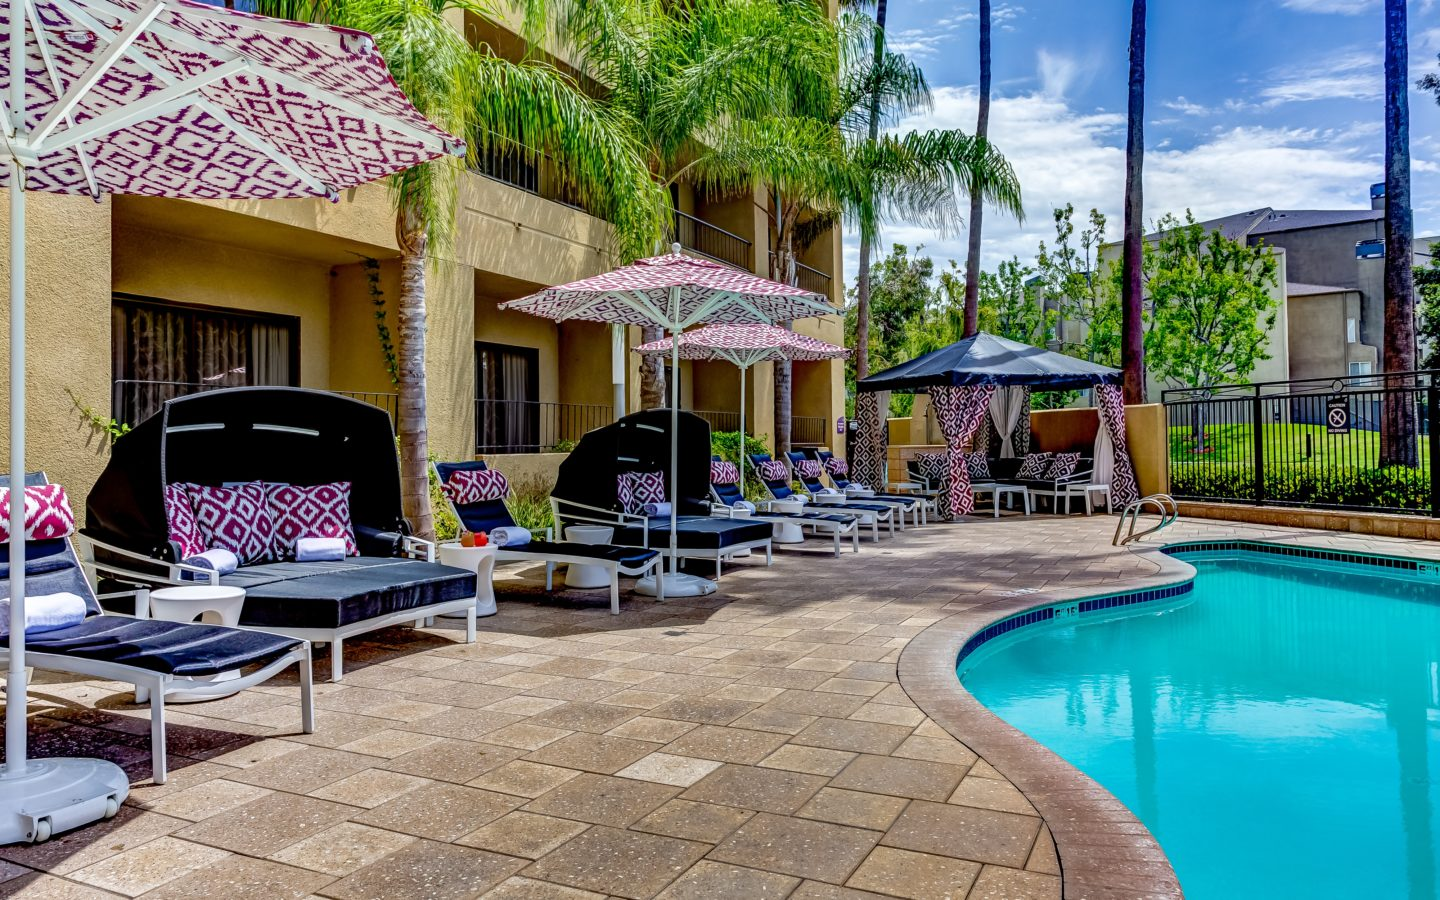 lounge chairs with umbrellas beside pool